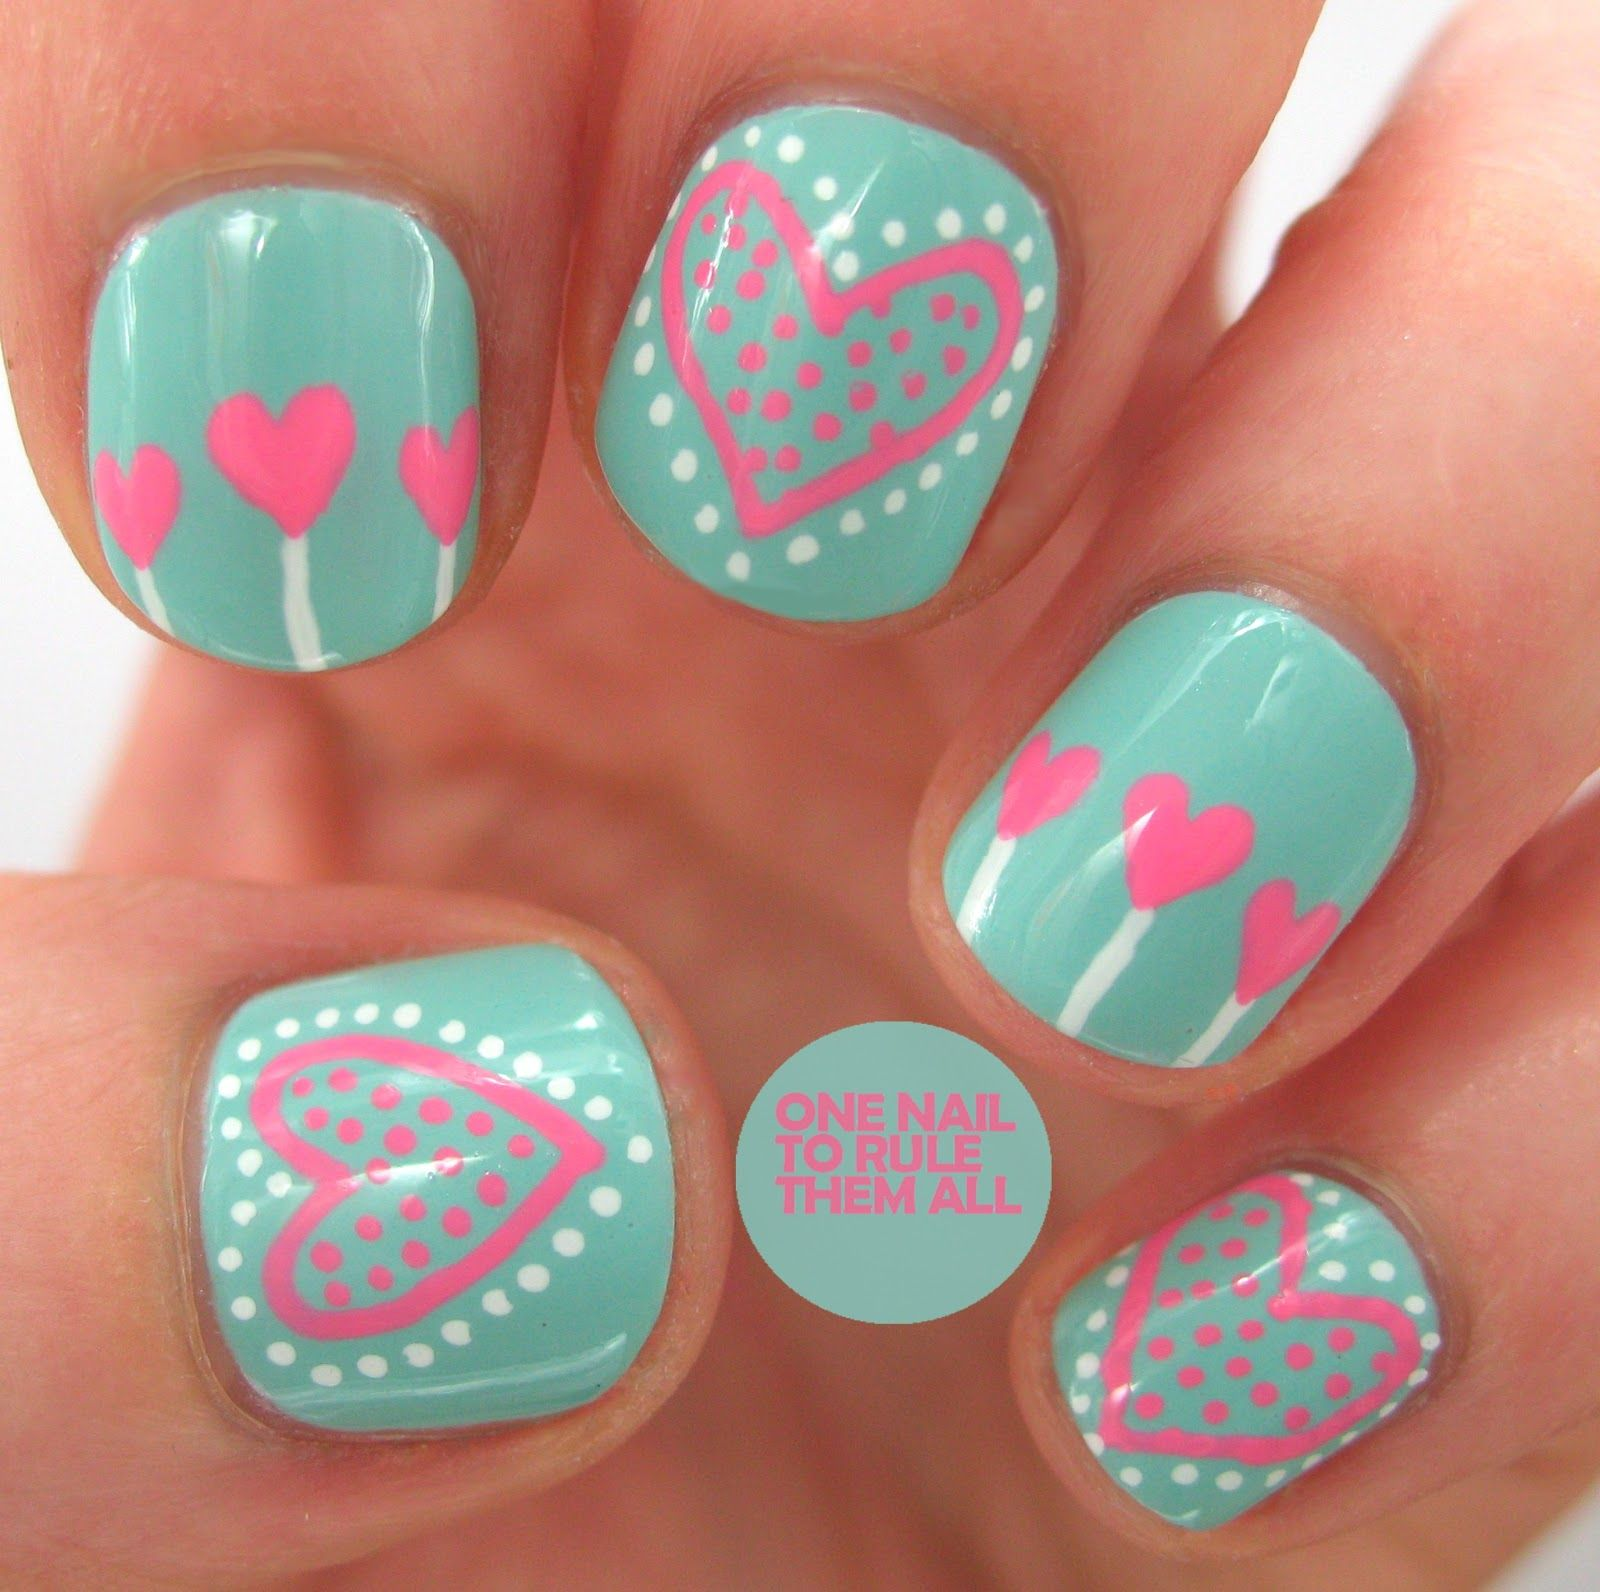 One Nail To Rule Them All: Barry M Nail Art Pens Review | Freehand ...